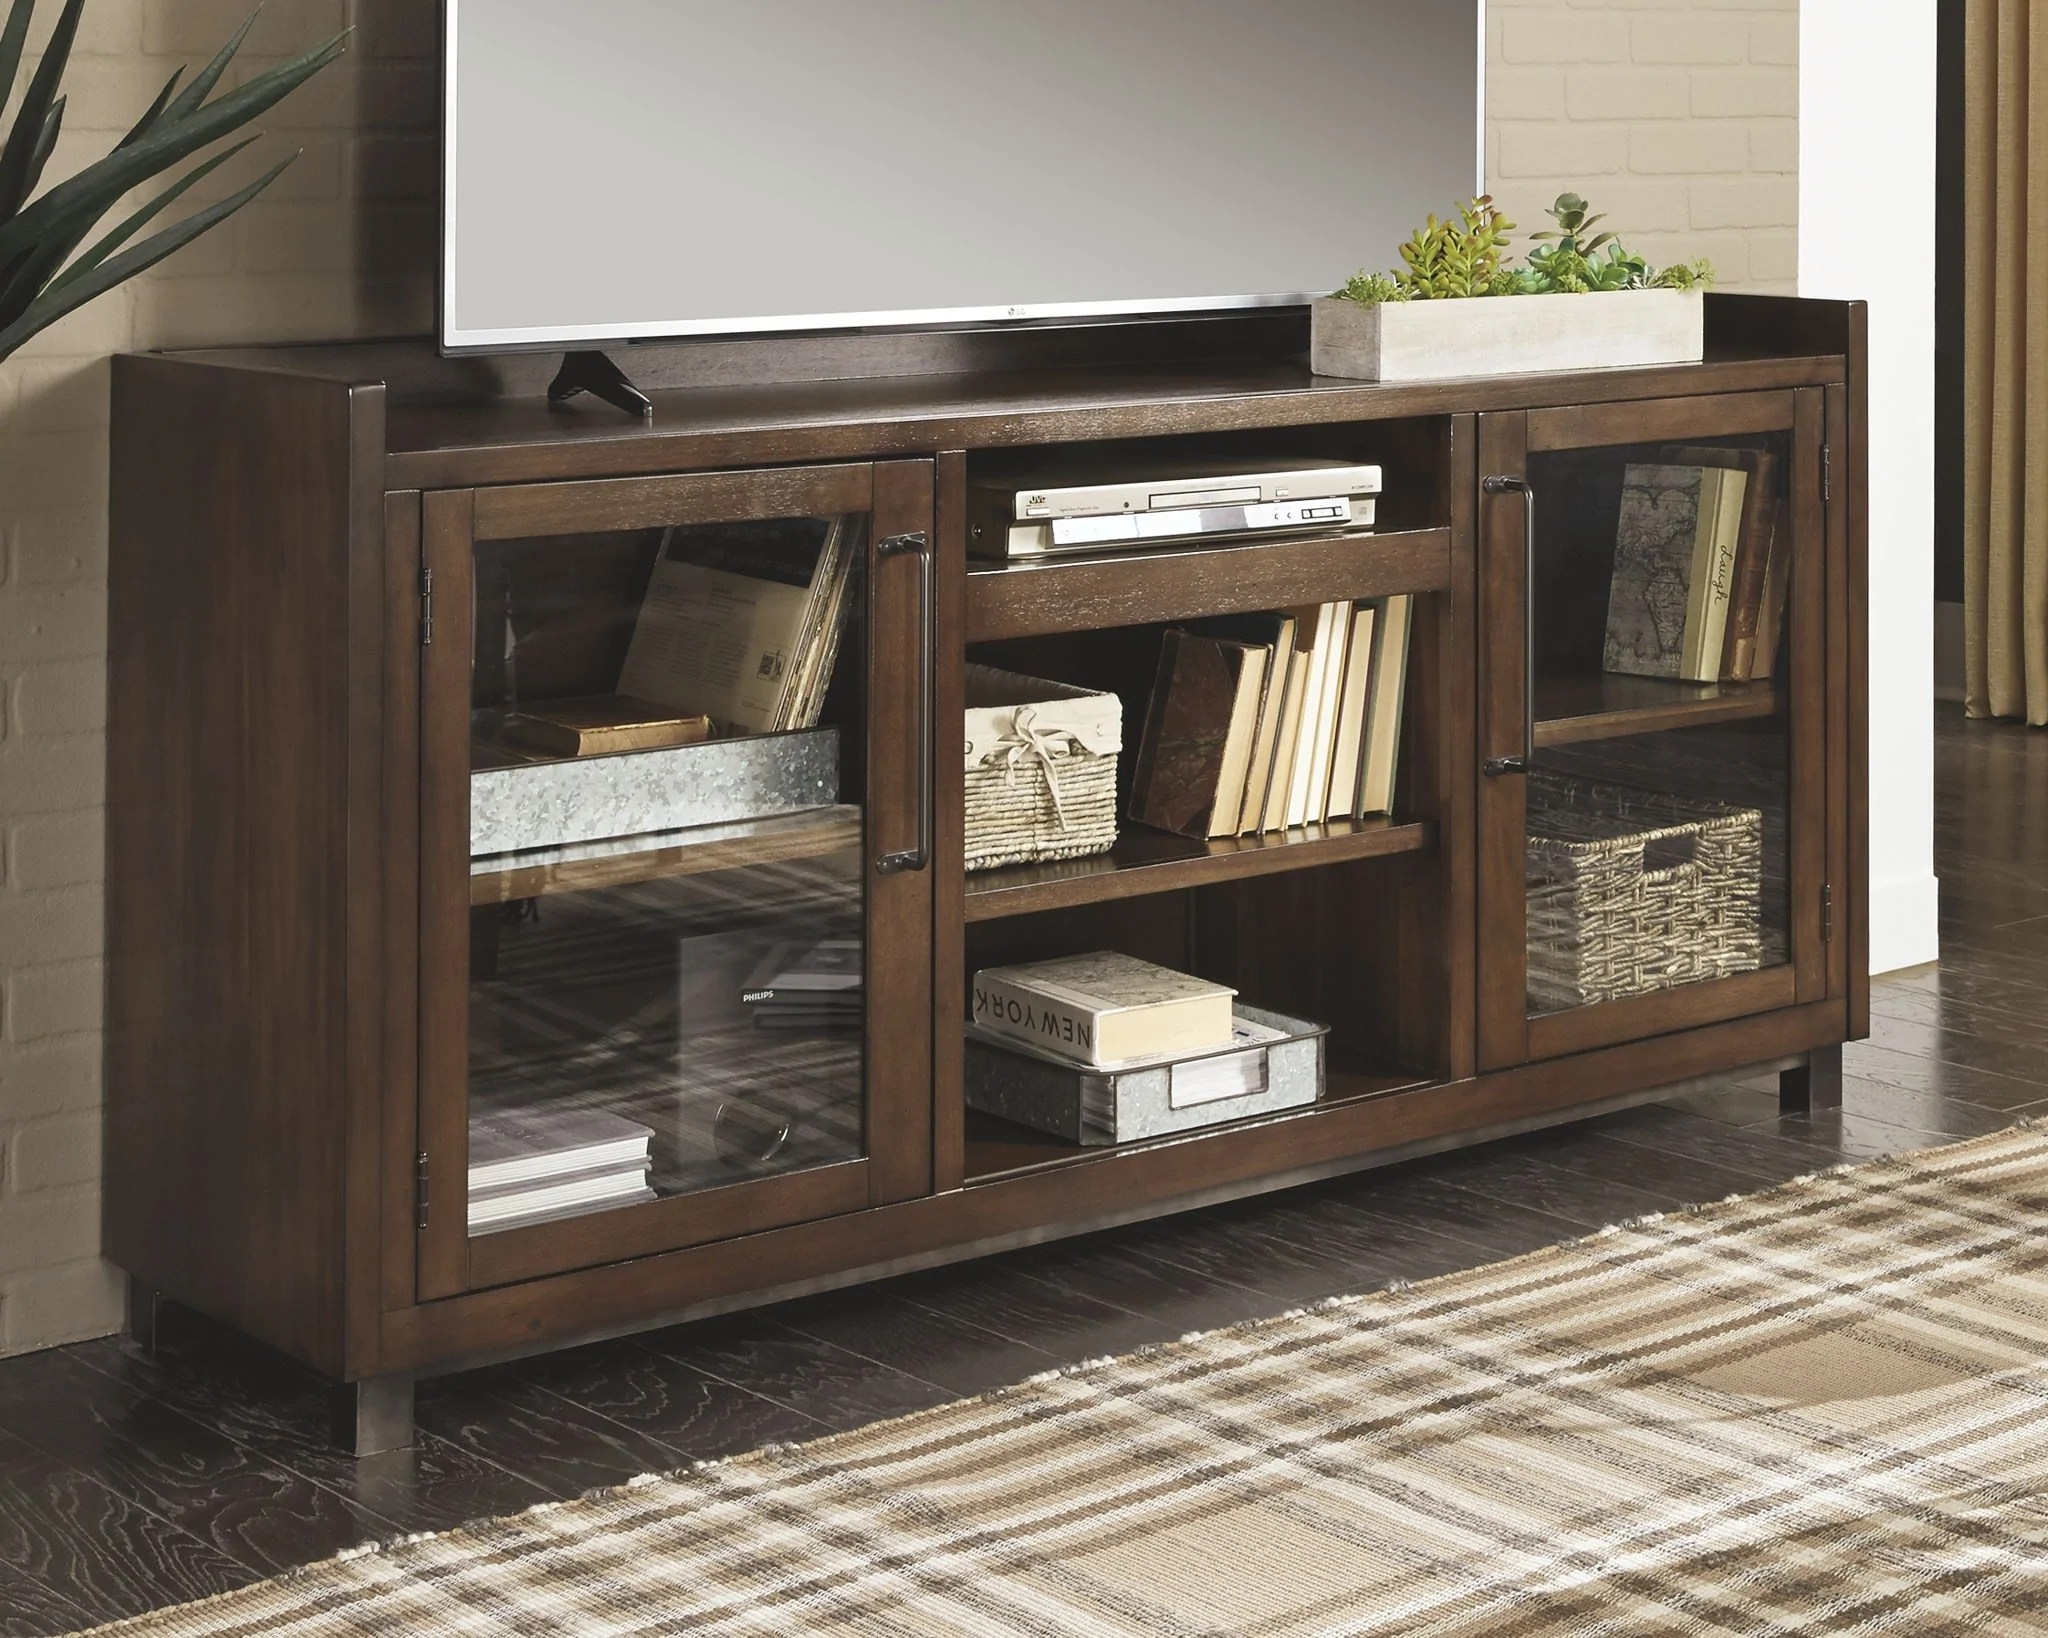 Starmore 3 Piece Wall Unit With Electric Fireplace Showhome Furniture Calgary S Furniture Store